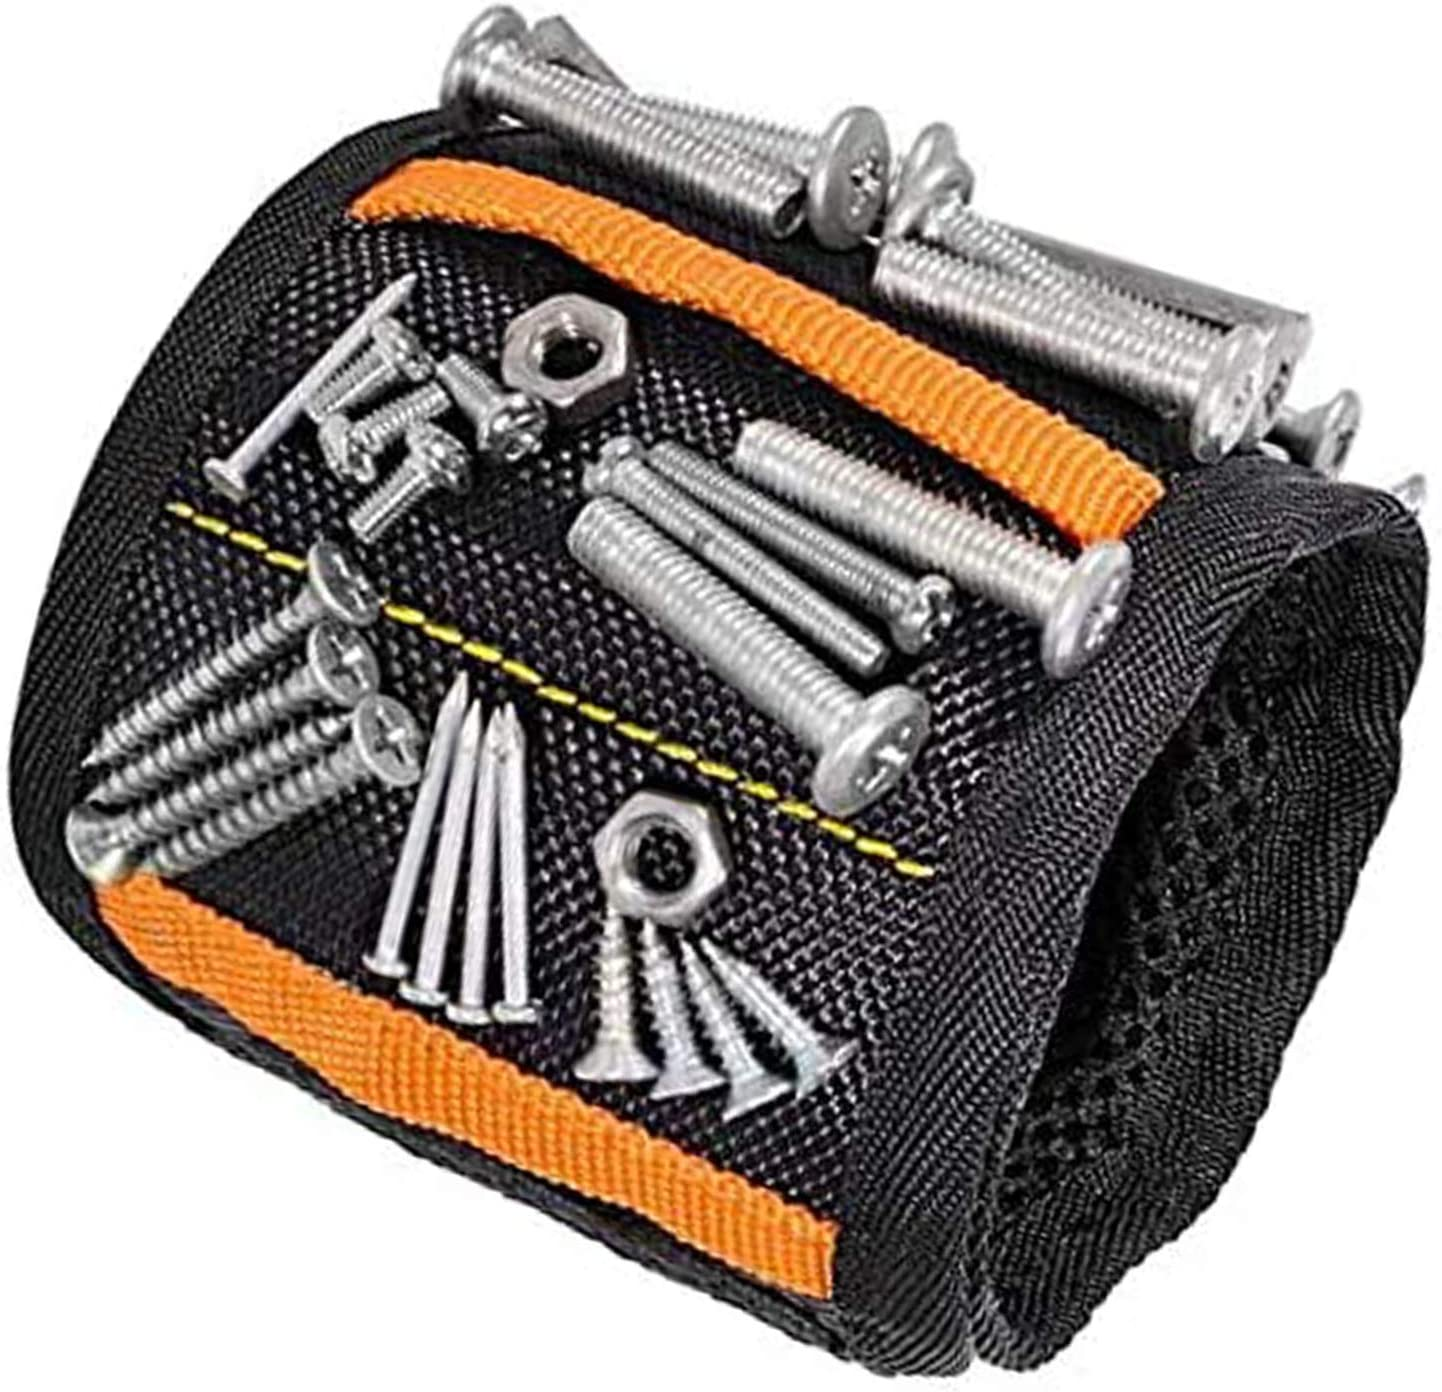 Discount mail order Max 82% OFF Magnetic Wristband Holding Screws Belt Tool Needles for